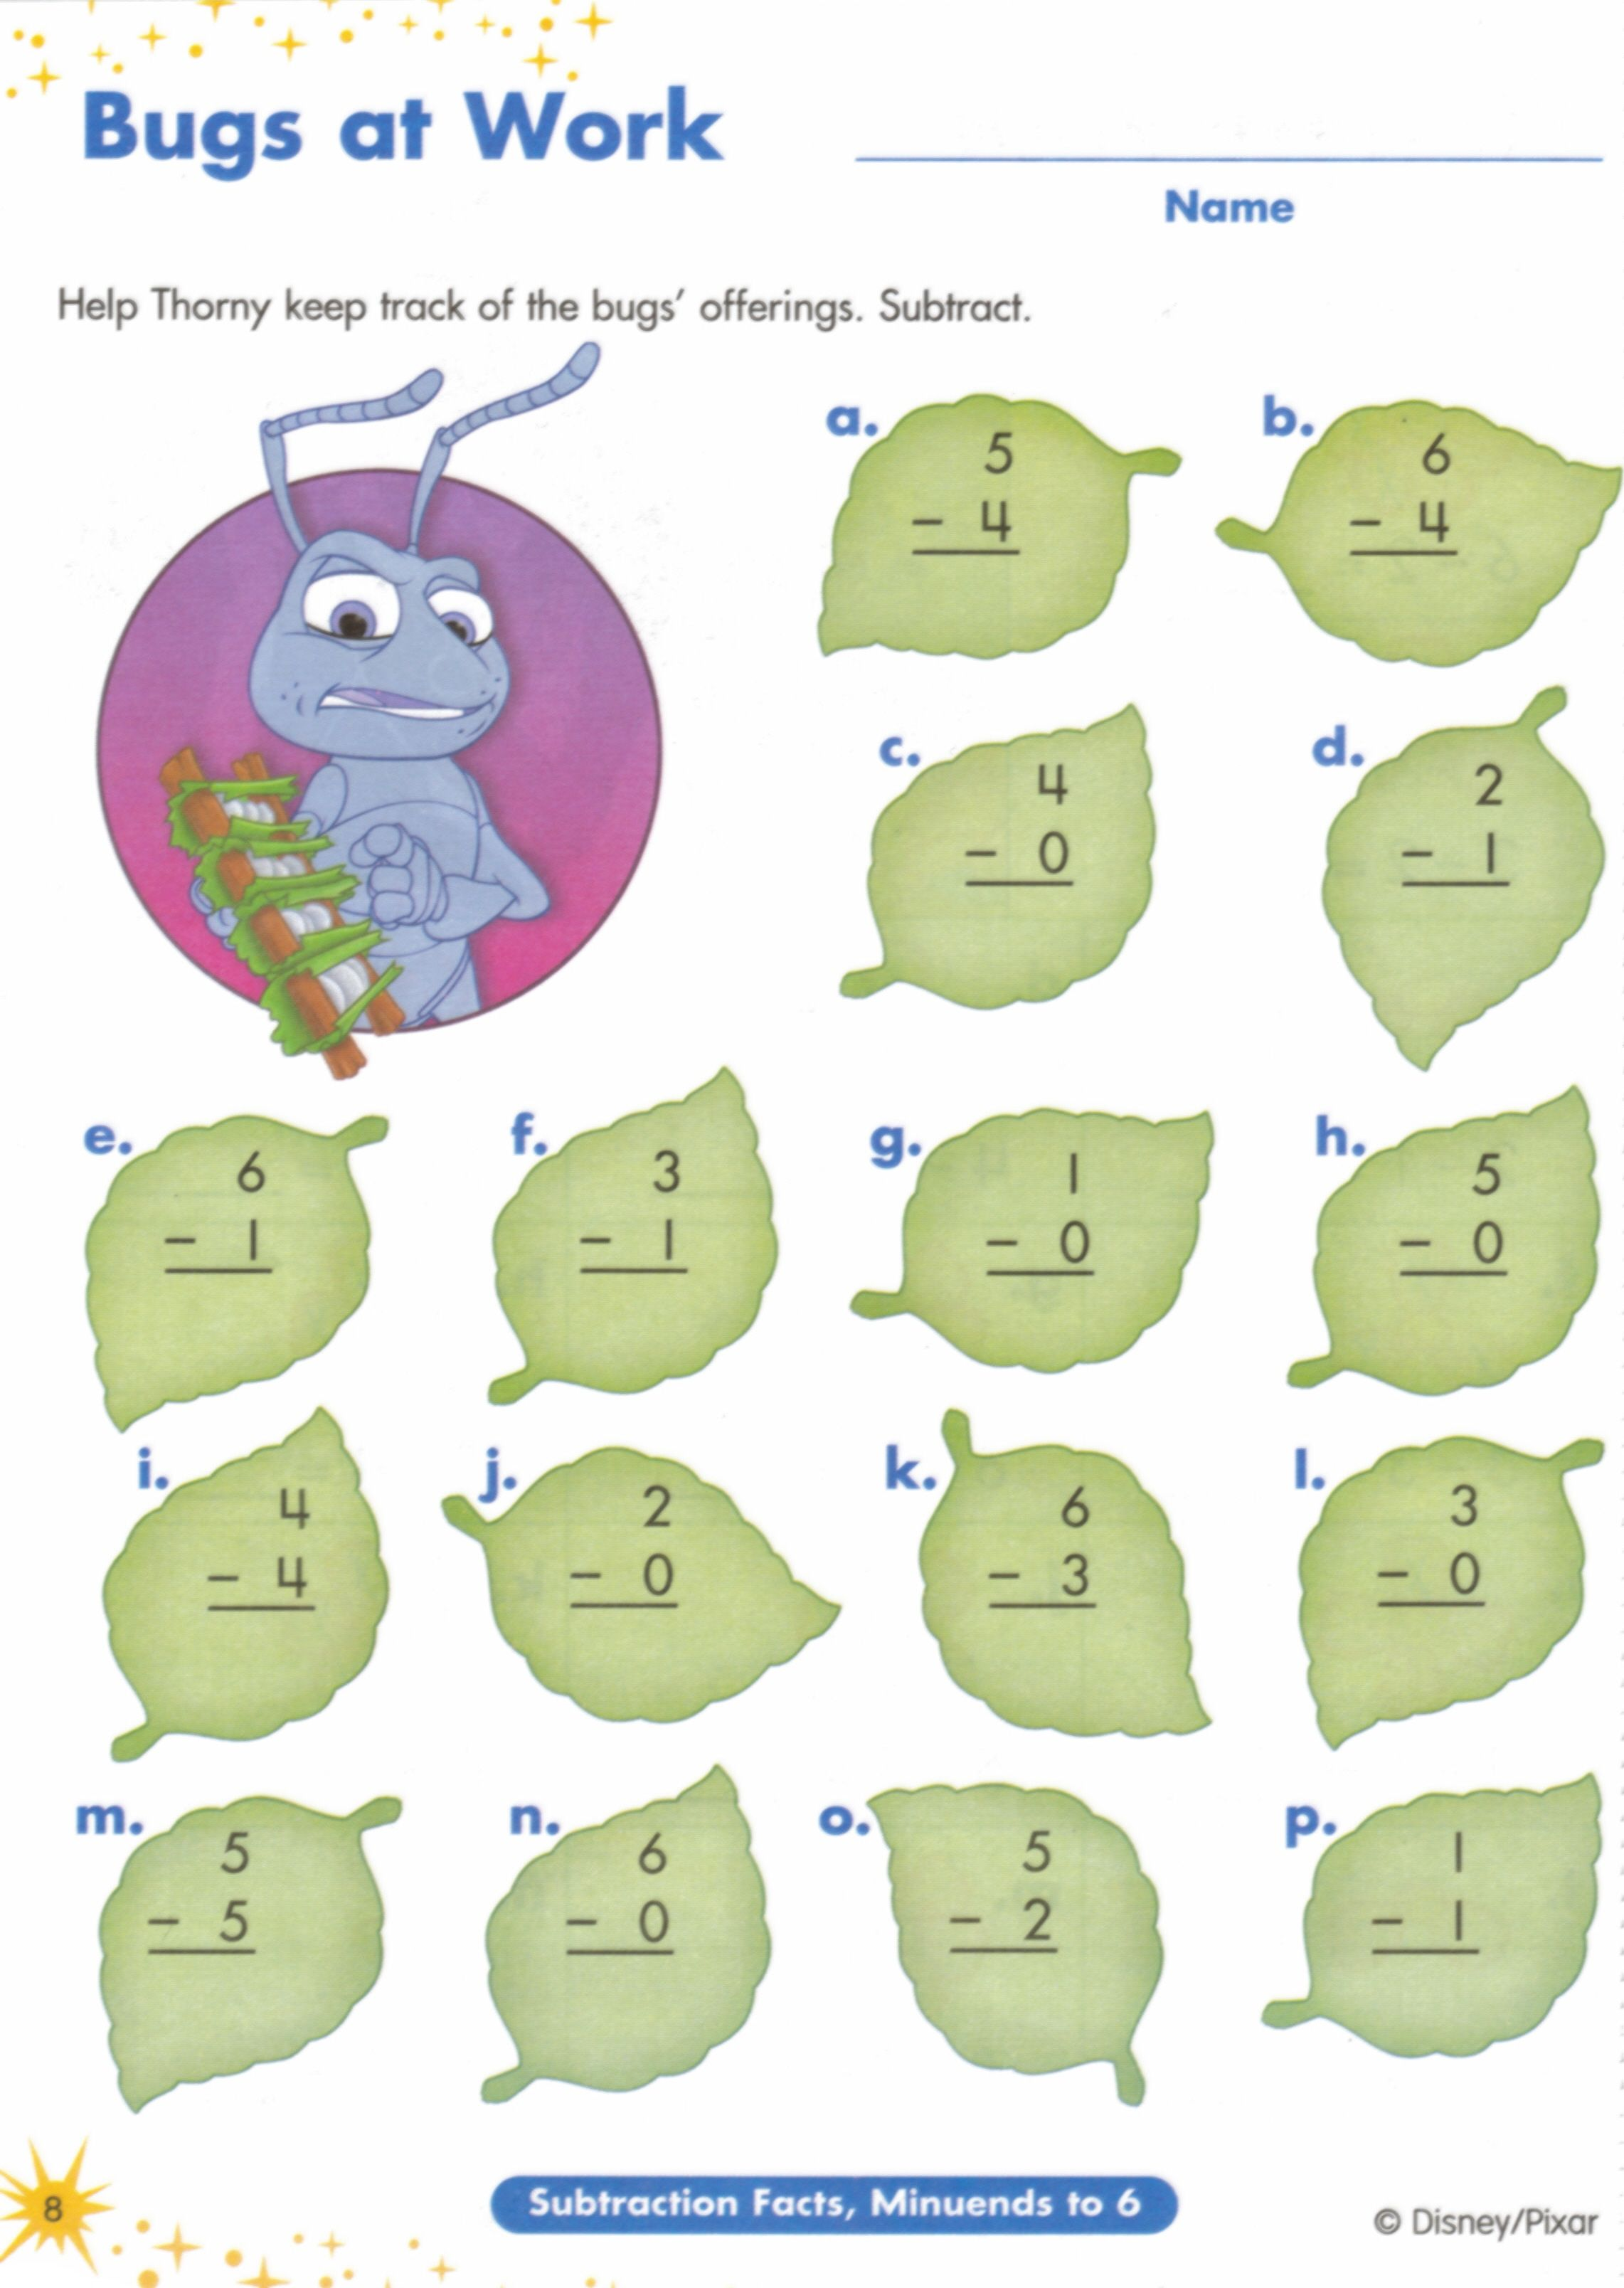 Proatmealus  Unusual  Images About Worksheets On Pinterest  Fun Facts For Kids  With Marvelous  Images About Worksheets On Pinterest  Fun Facts For Kids Earth Day Worksheets And Jungles With Astonishing Aa Step Two Worksheet Also Simple Bar Graph Worksheets In Addition Reading Comprehension Worksheets Th Grade Free And Free Printable Subject And Predicate Worksheets As Well As Grade  Grammar Worksheets Additionally Super Teacher Worksheets Time From Pinterestcom With Proatmealus  Marvelous  Images About Worksheets On Pinterest  Fun Facts For Kids  With Astonishing  Images About Worksheets On Pinterest  Fun Facts For Kids Earth Day Worksheets And Jungles And Unusual Aa Step Two Worksheet Also Simple Bar Graph Worksheets In Addition Reading Comprehension Worksheets Th Grade Free From Pinterestcom